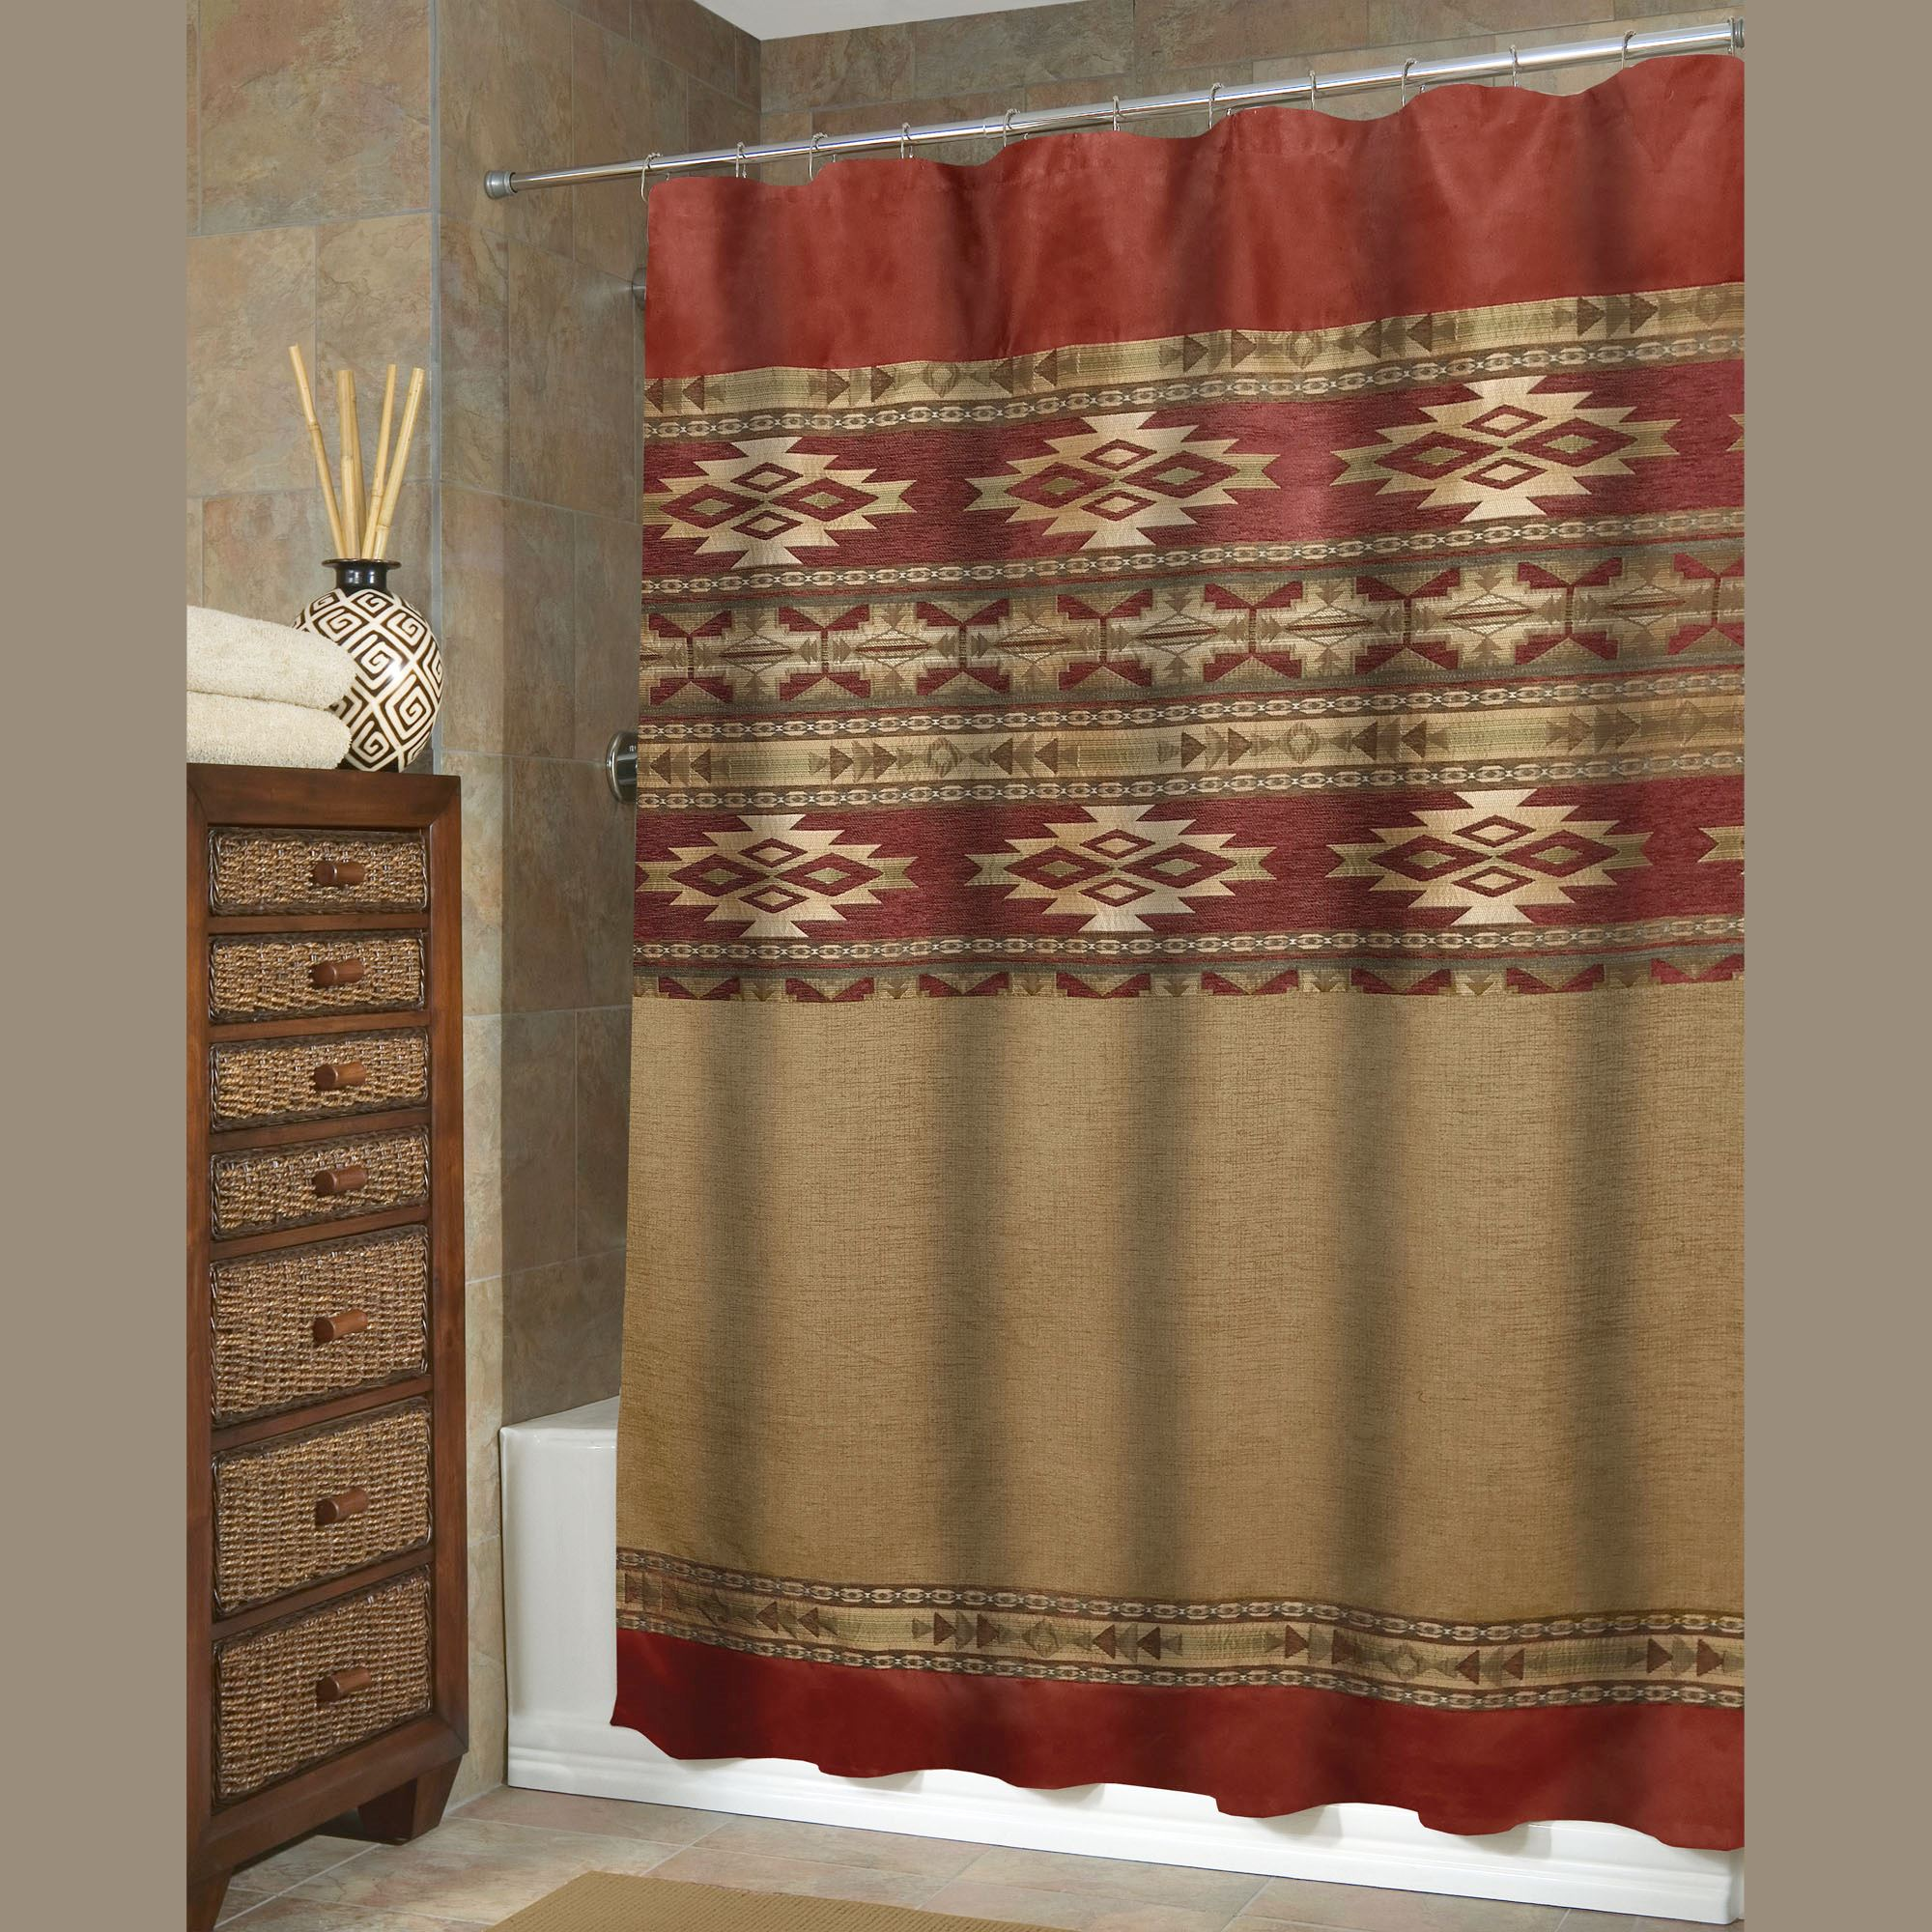 curtain southwestern images chimayo shower curtains product pendleton embroidered